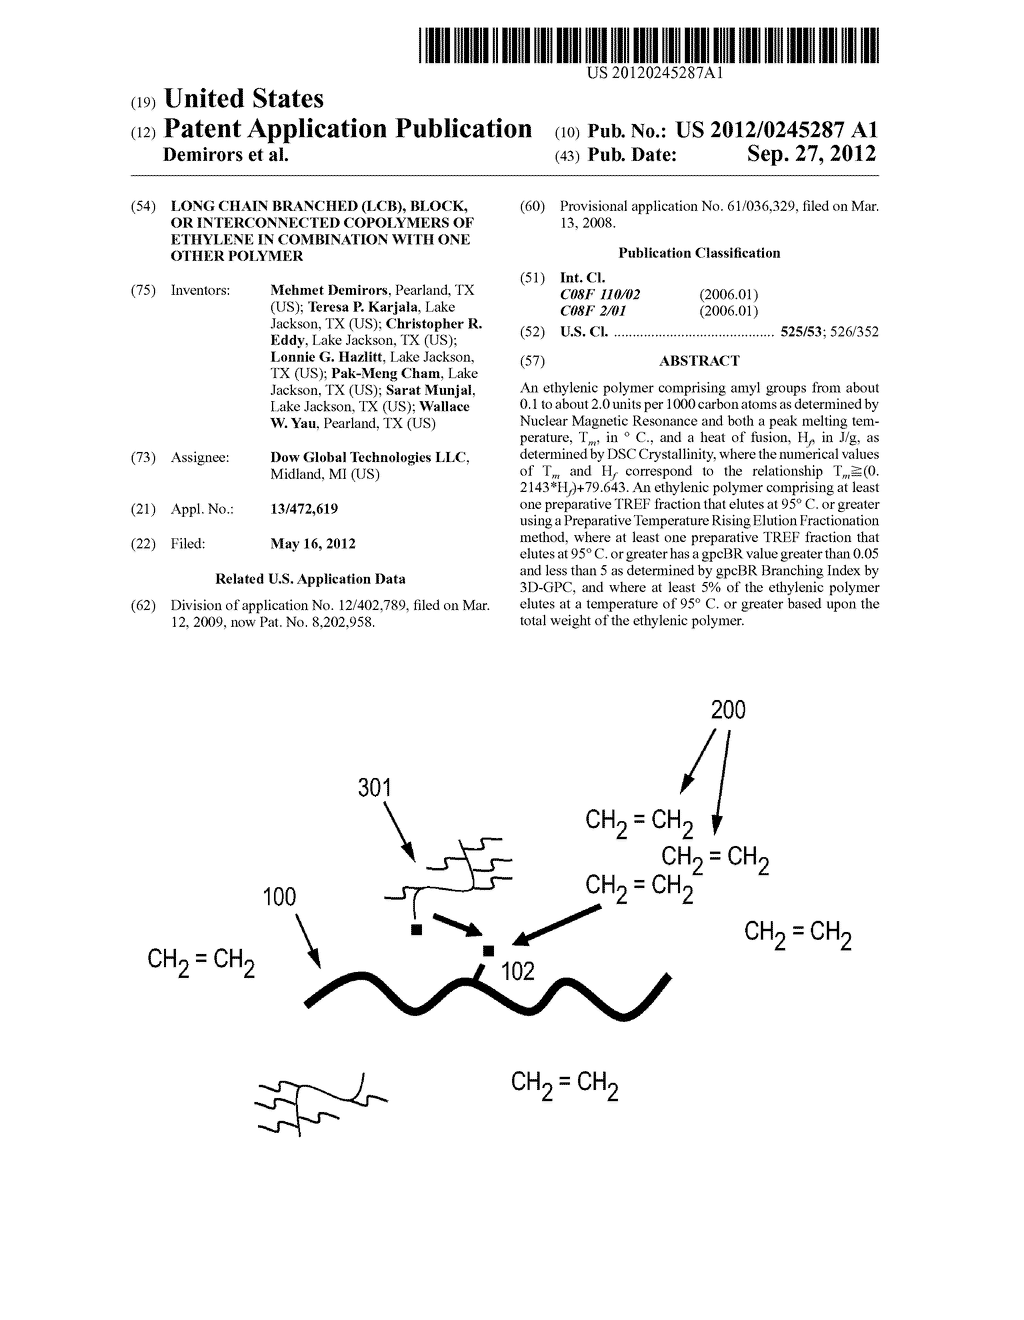 LONG CHAIN BRANCHED (LCB), BLOCK, OR INTERCONNECTED COPOLYMERS OF ETHYLENE     IN COMBINATION WITH ONE OTHER POLYMER - diagram, schematic, and image 01